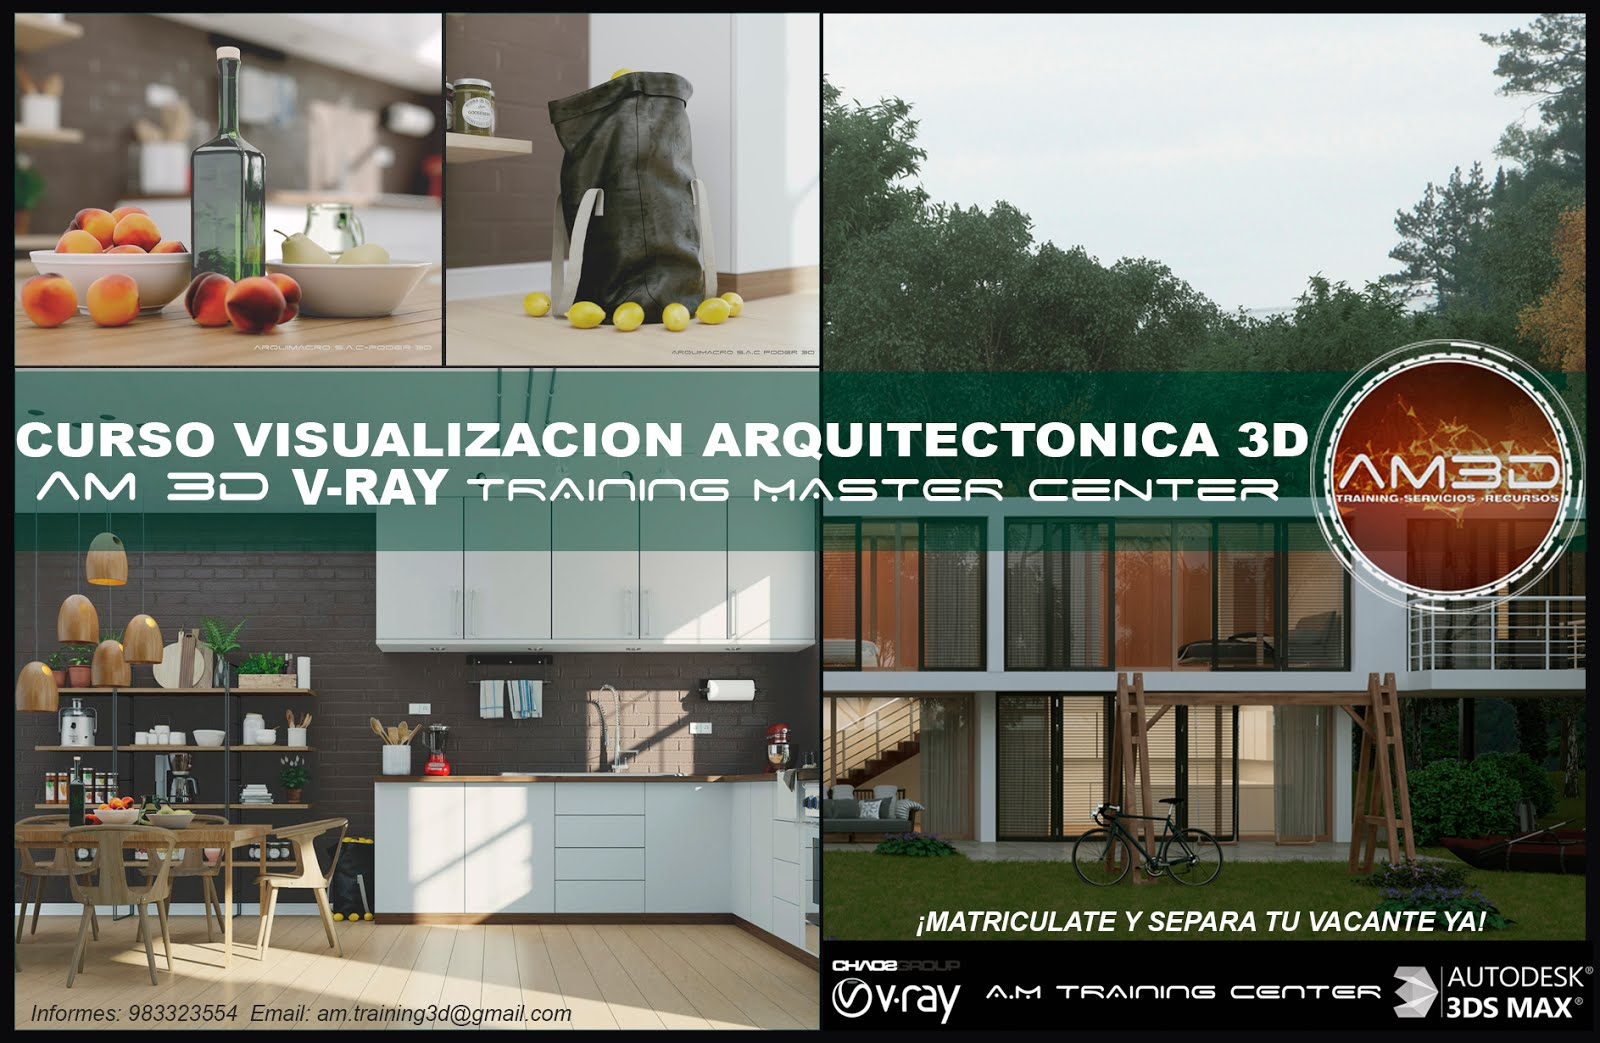 Cursos vray training Center